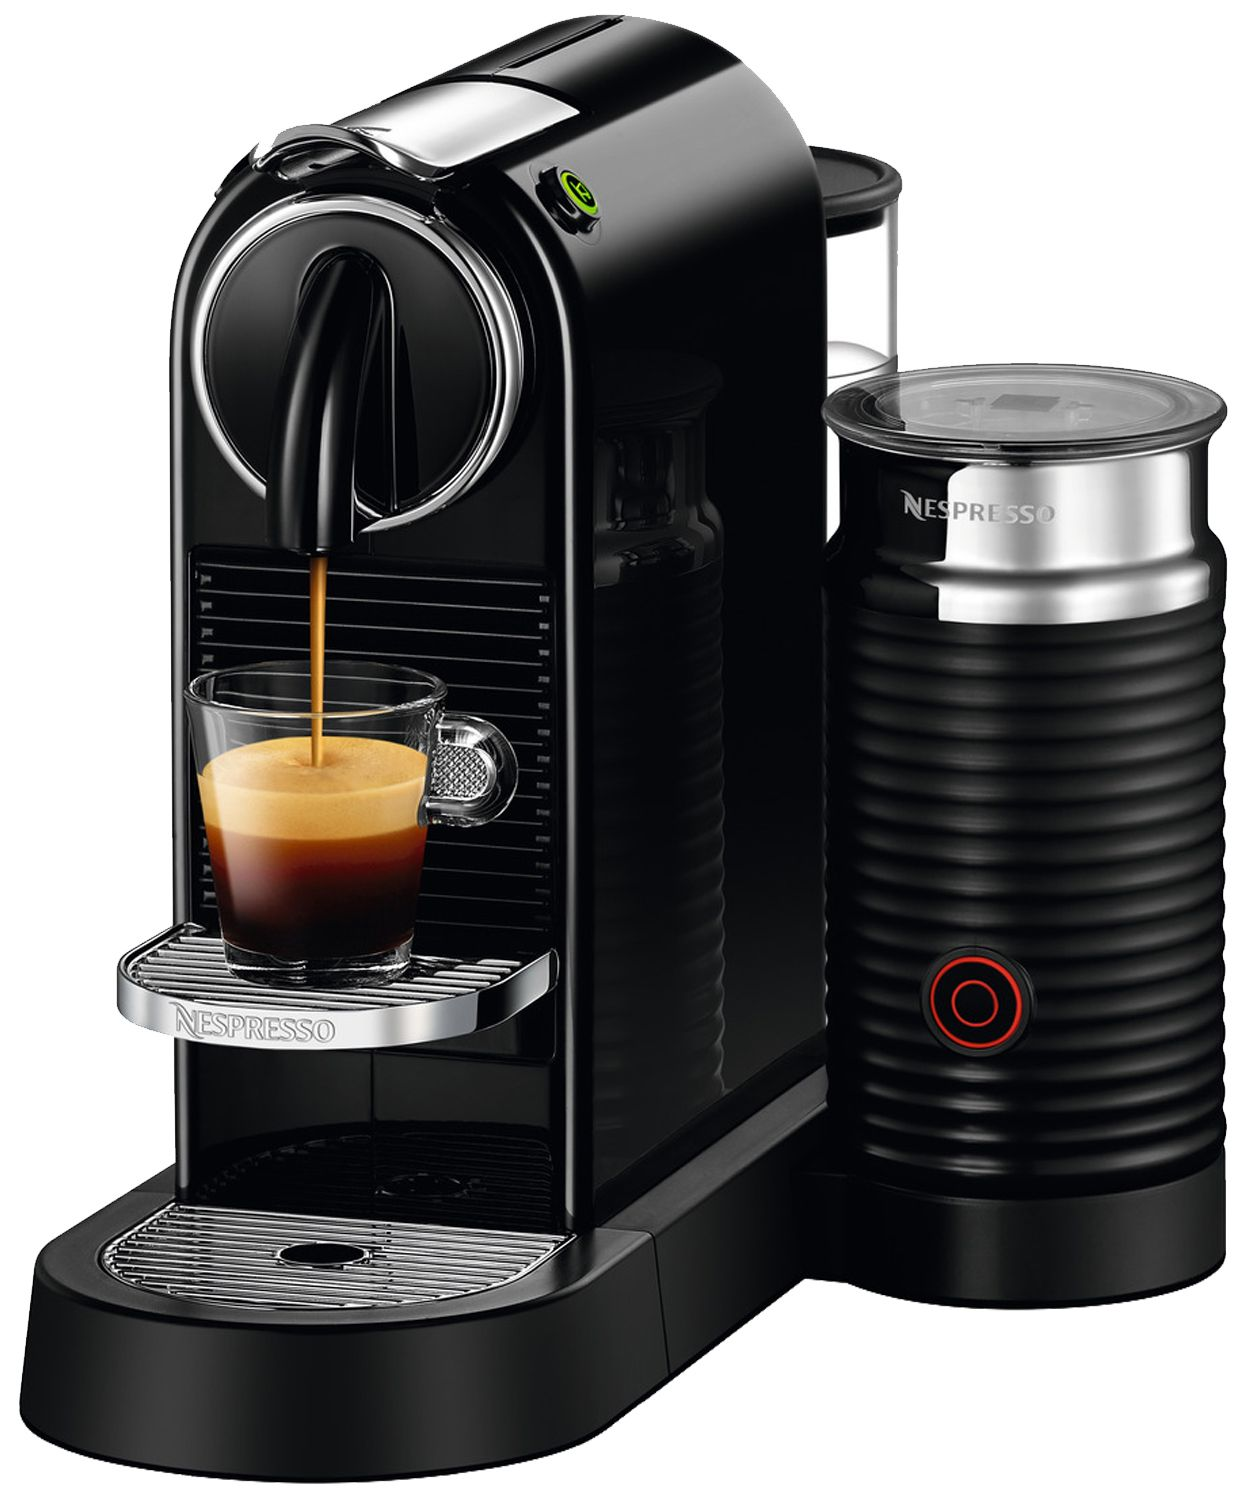 nespresso citiz milk black espresso machine d122 us bk ne. Black Bedroom Furniture Sets. Home Design Ideas